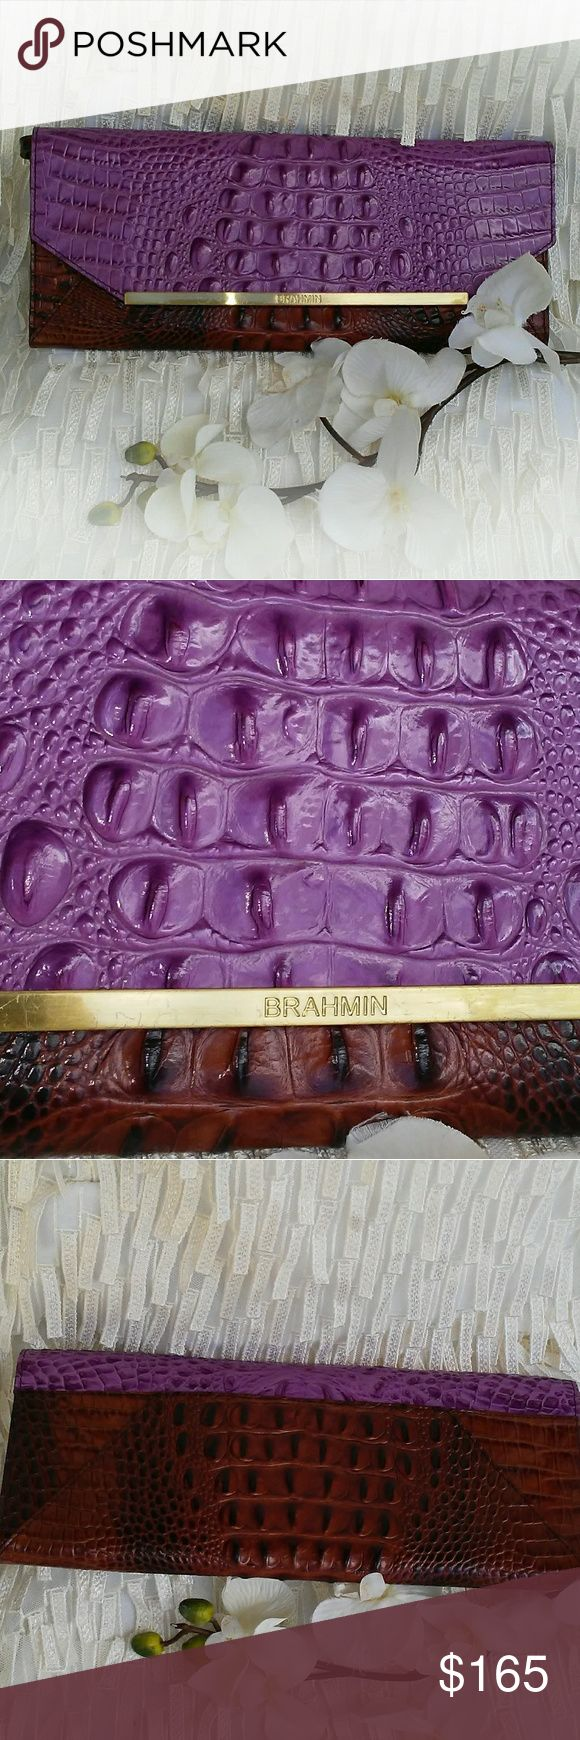 """Brahmin 'Alexis' Clutch Absolutely stunning Brahmin 'Alexis' clutch. This bag is sleek, super chic and perfect for every occasion. The beautiful lavender and brown combination enlivens the crocodile- embossed clutch. This bag has detachable shoulder strap (12"""" to 14"""" drop).  13""""L x 5.5""""H x 1.5""""W. Interior has one zip pocket, key clip and signature Brahmin lining. Exterior has magnetic flap closure. This bag has never been carried and is in perfect condition! (as seen in photos) Definitely a…"""